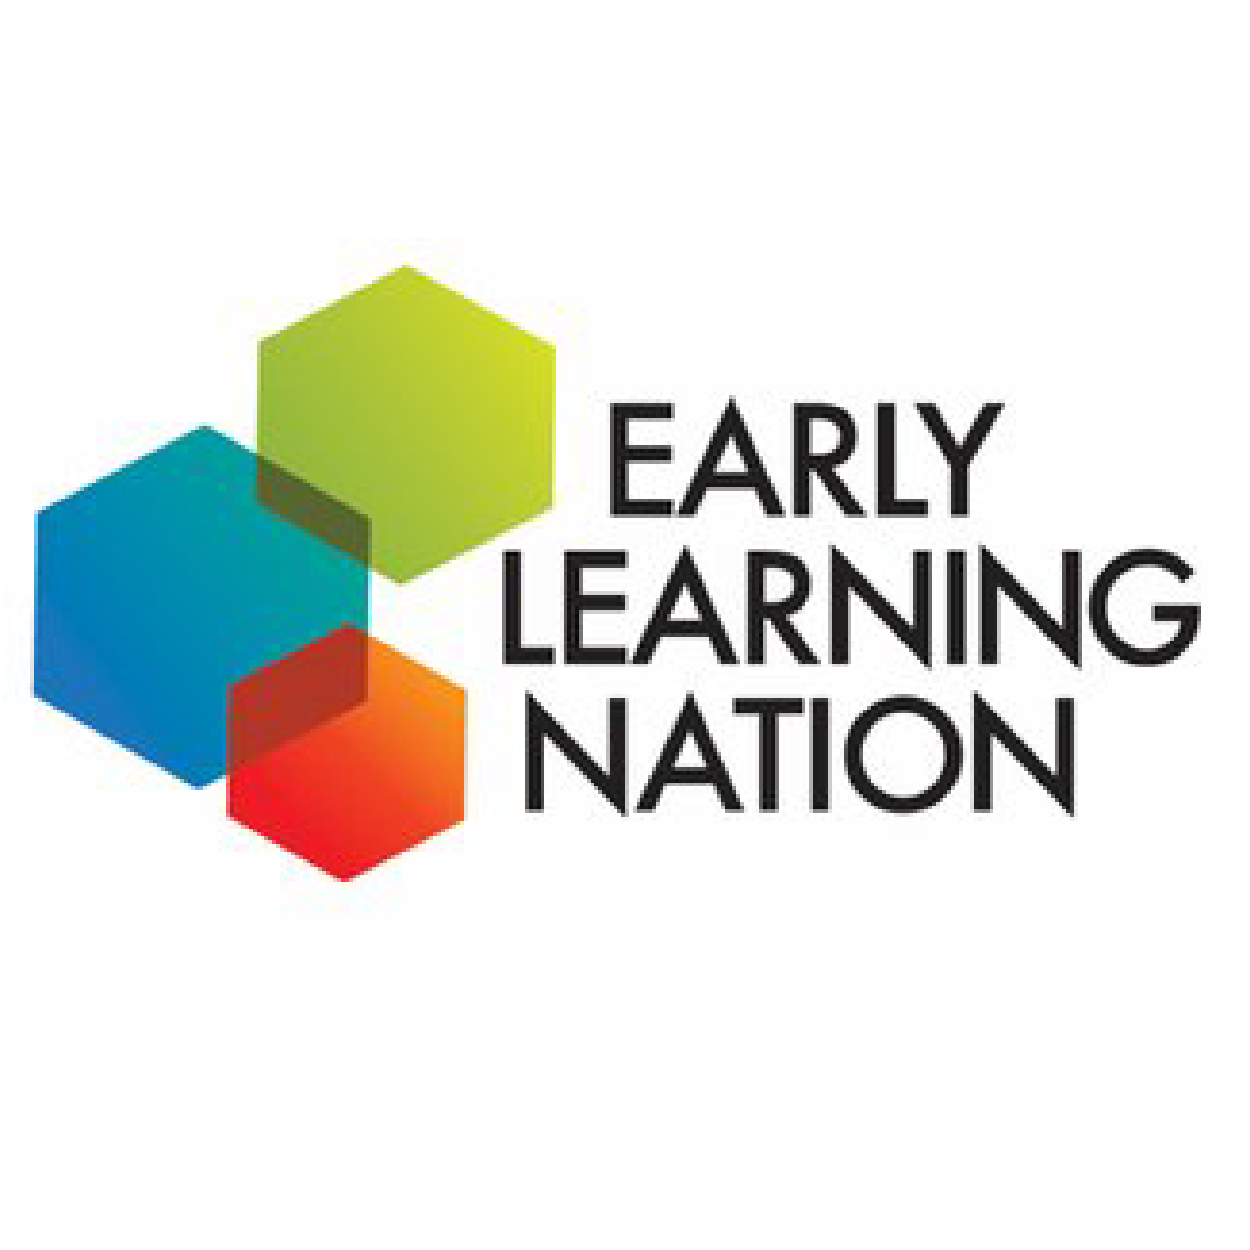 Early Learning Nation article